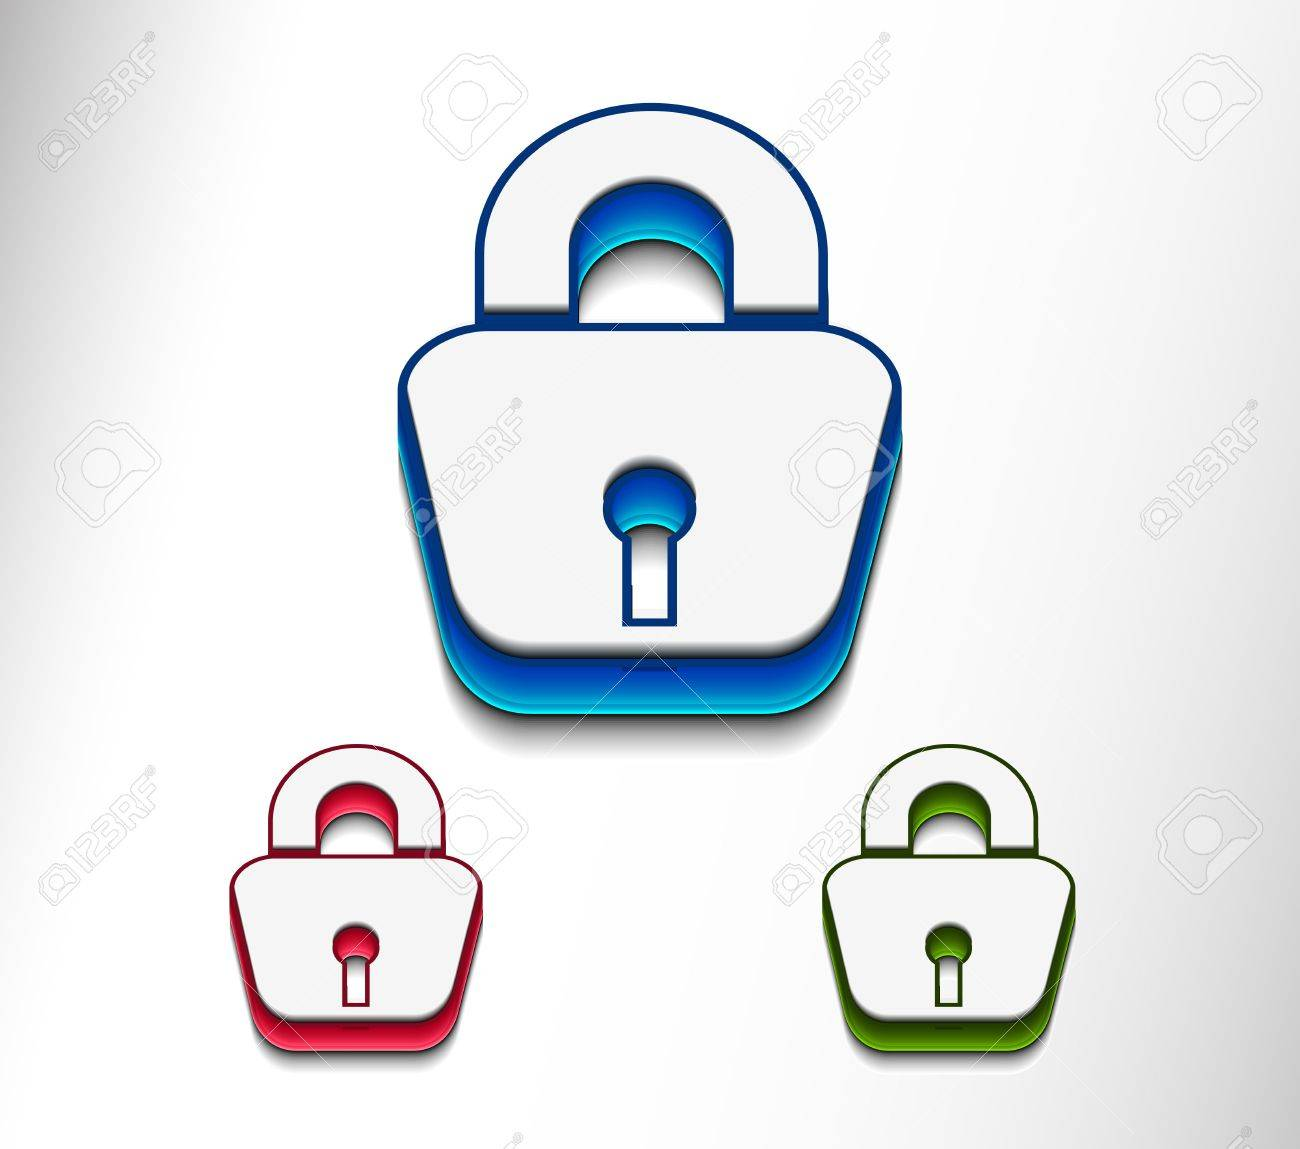 3d glossy lock icon, blue isolated on black background. Stock Vector - 9543023